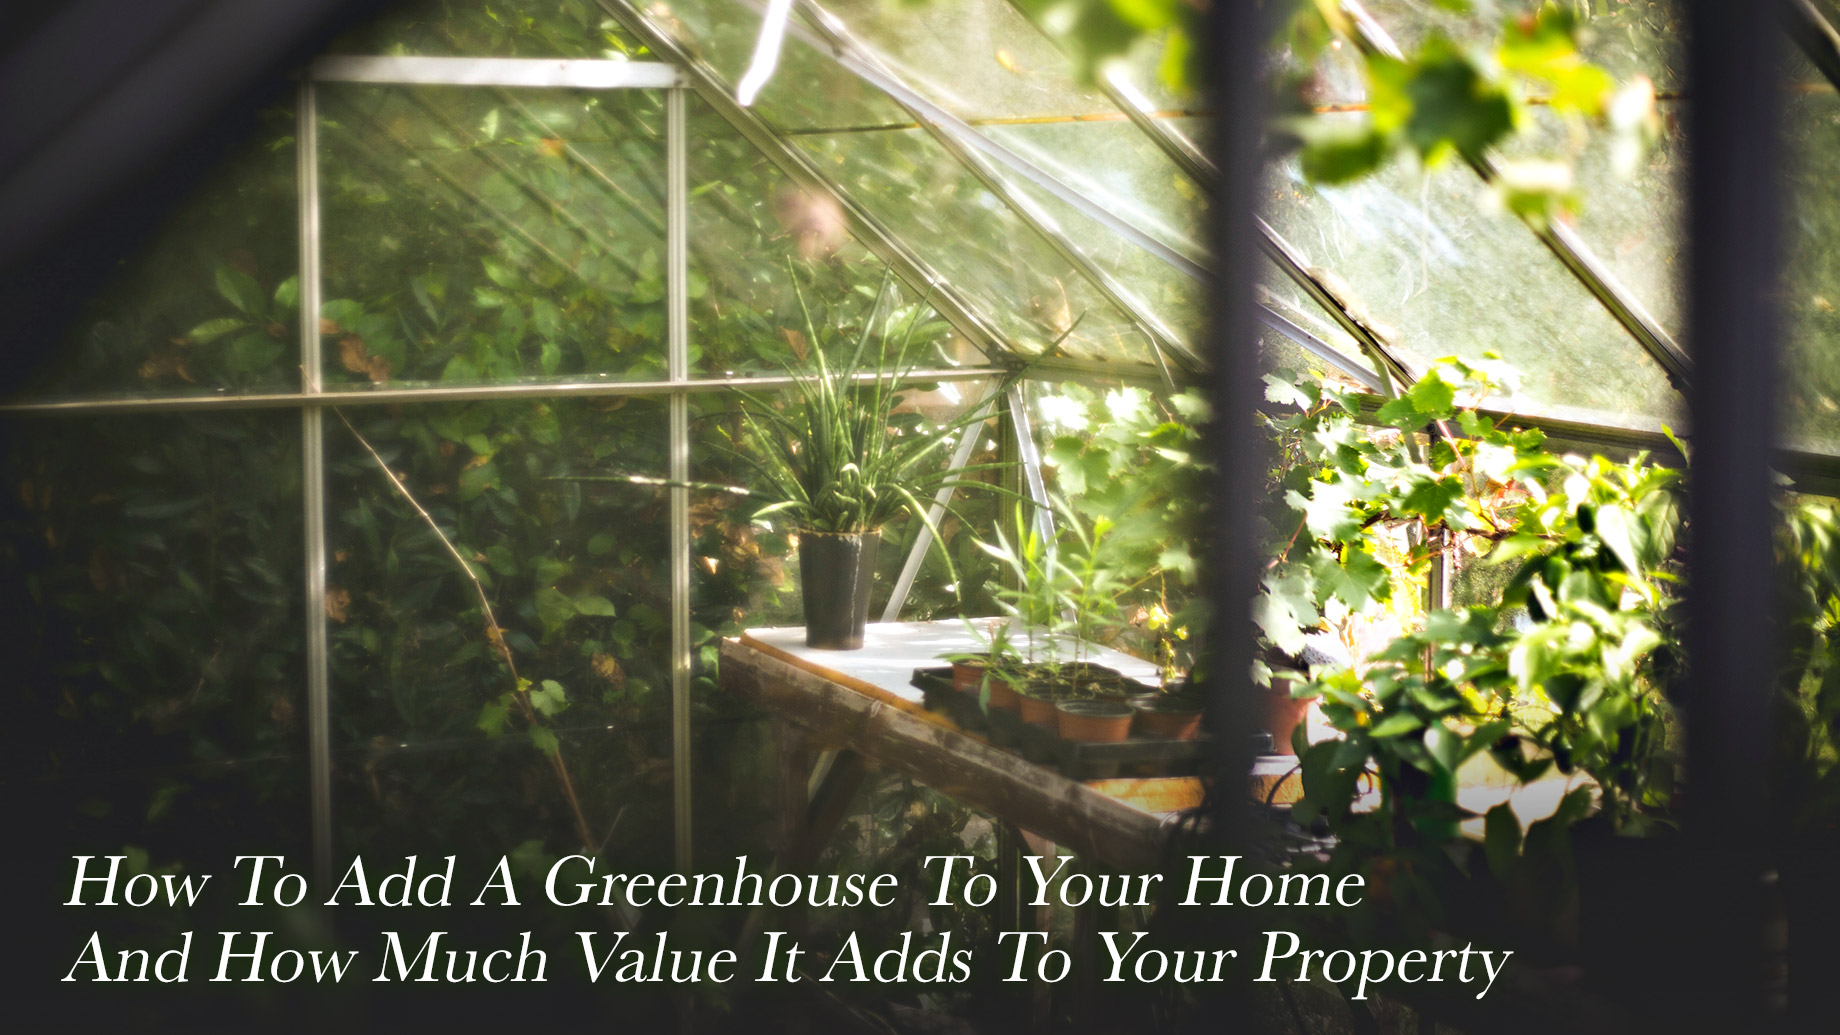 How To Add A Greenhouse To Your Home And How Much Value It Adds To Your Property